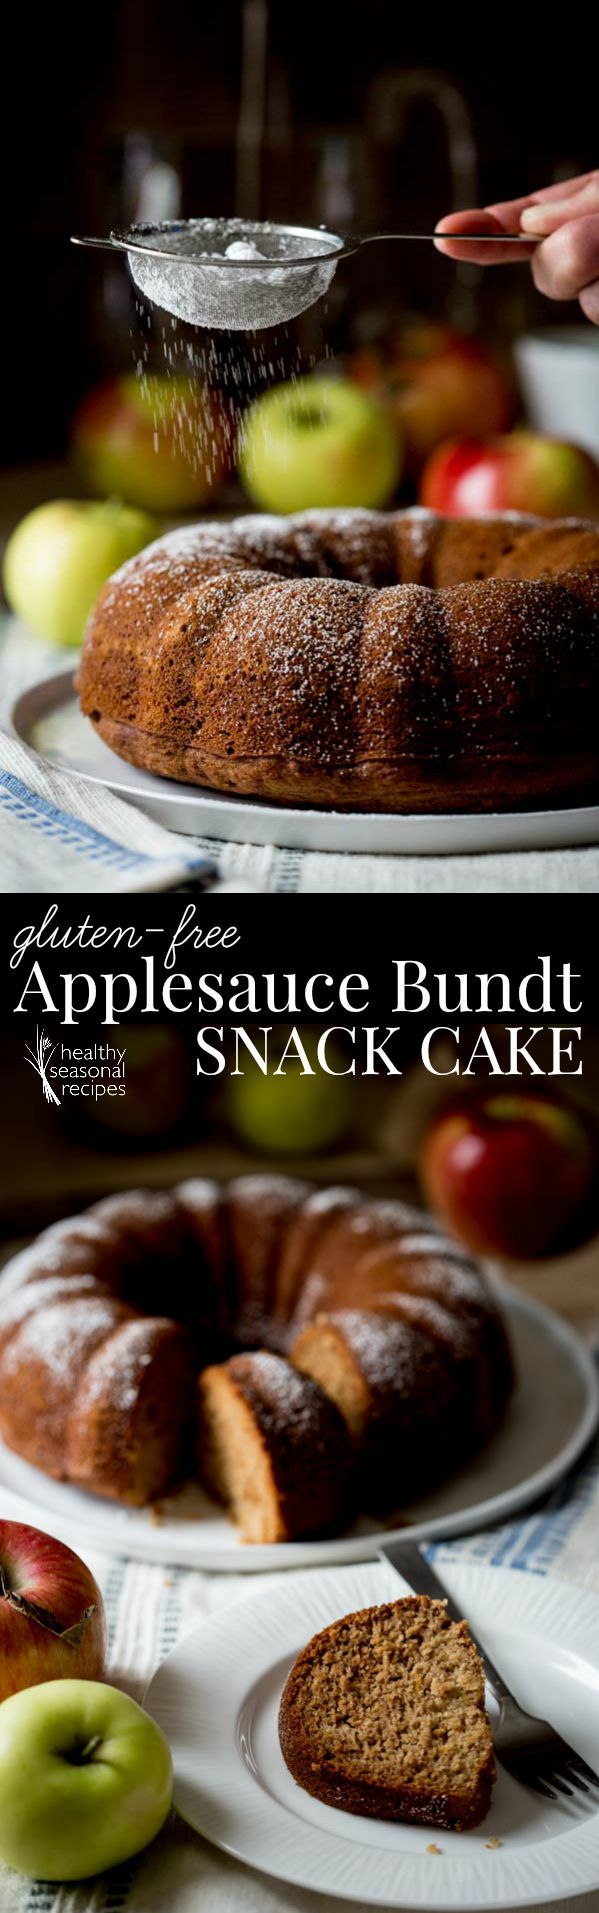 Blog post at Healthy Seasonal Recipes : This gluten-free applesauce bundt snack cake is one of those recipes I have made over and over again. It is made with brown rice flour (that[..]